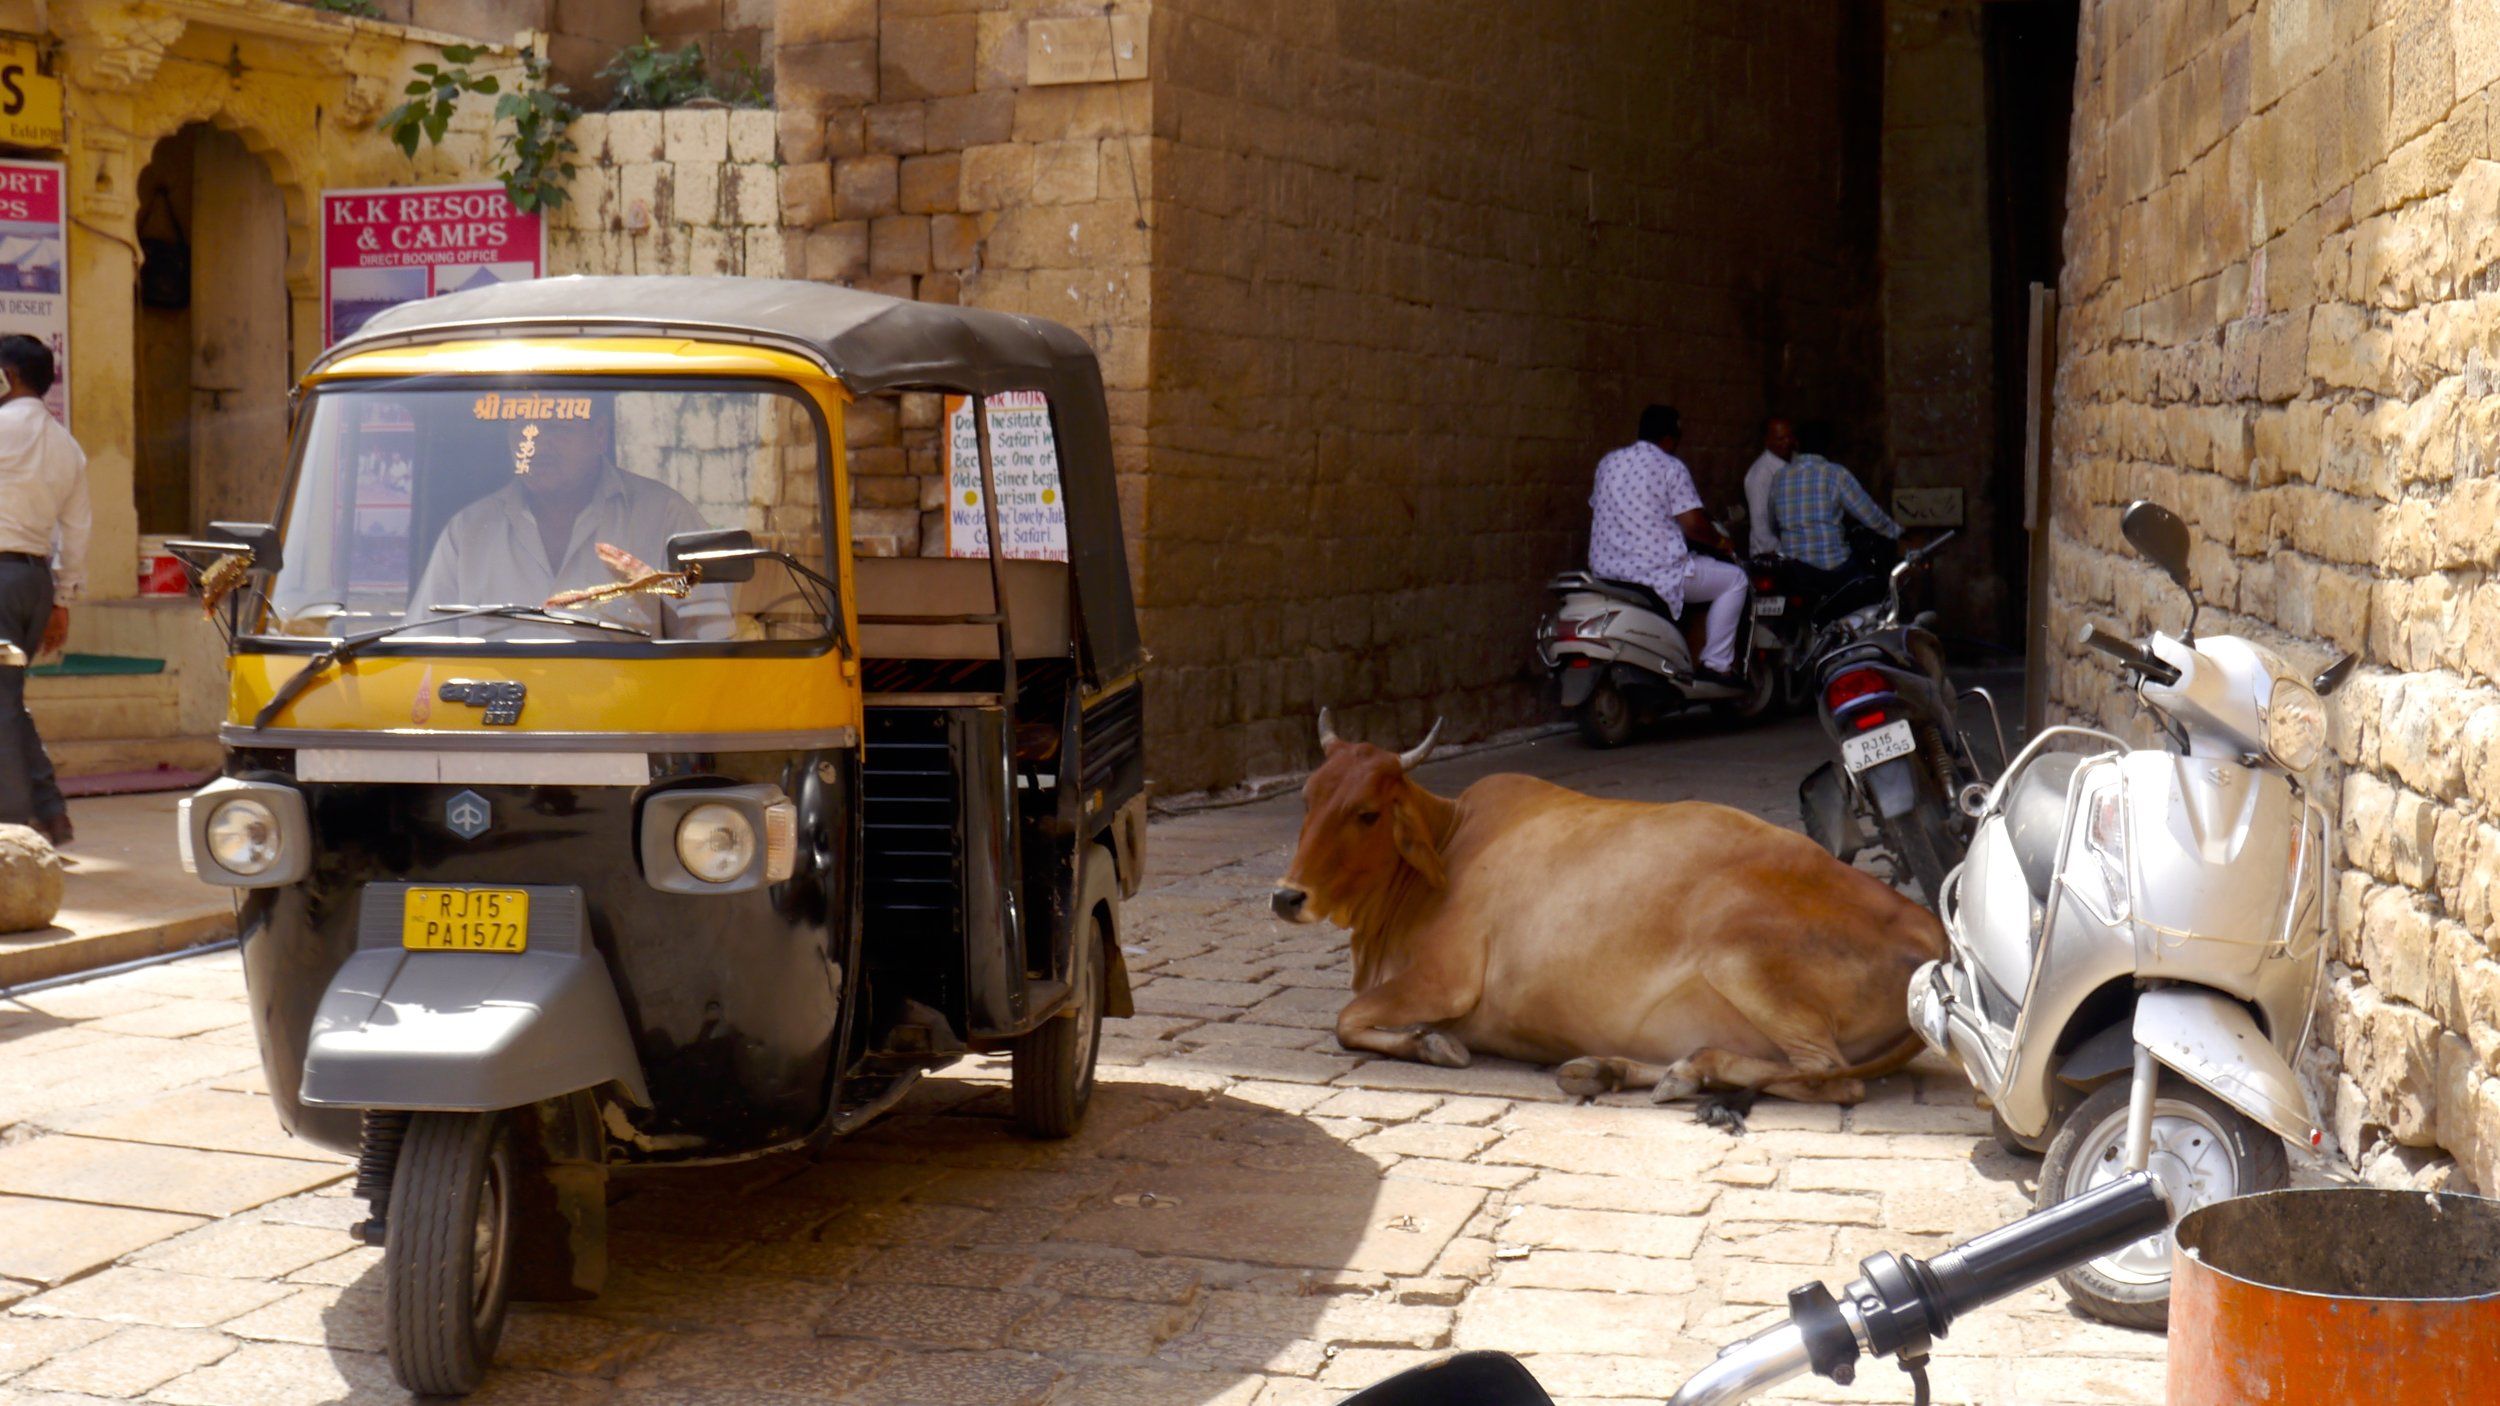 2/Yes, there are cows in the street